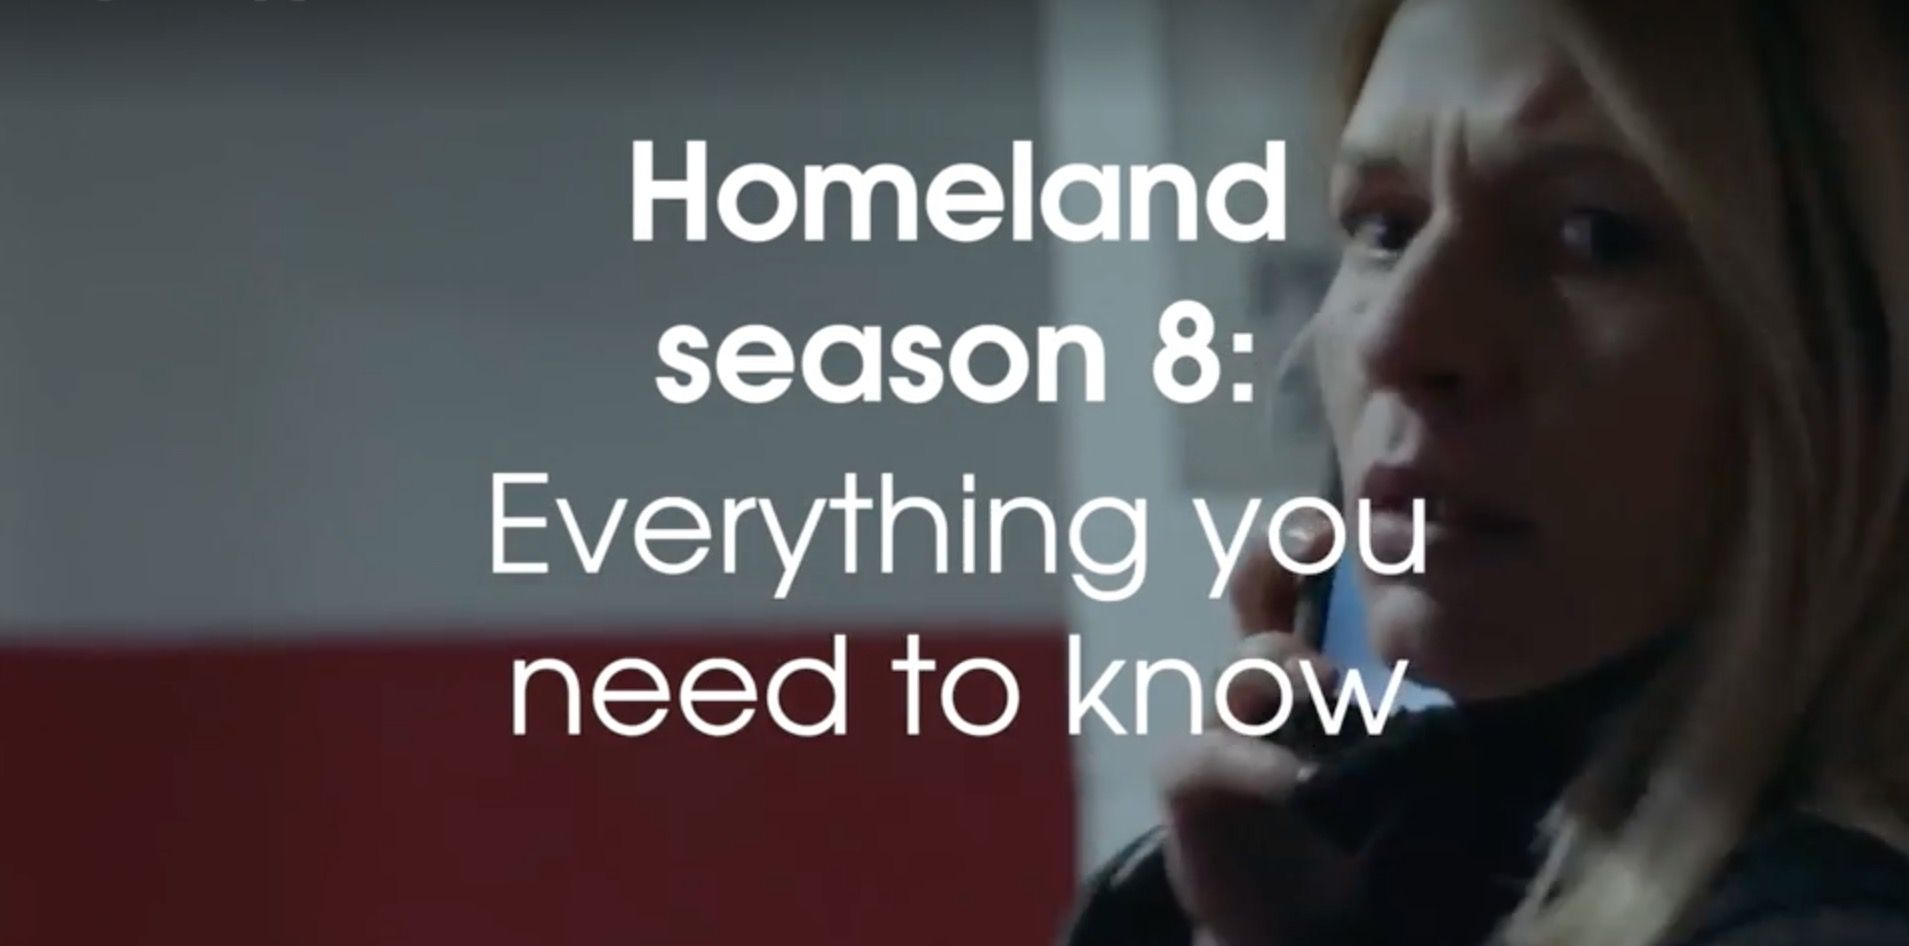 homeland season 8: release date, trailer, cast and everything you